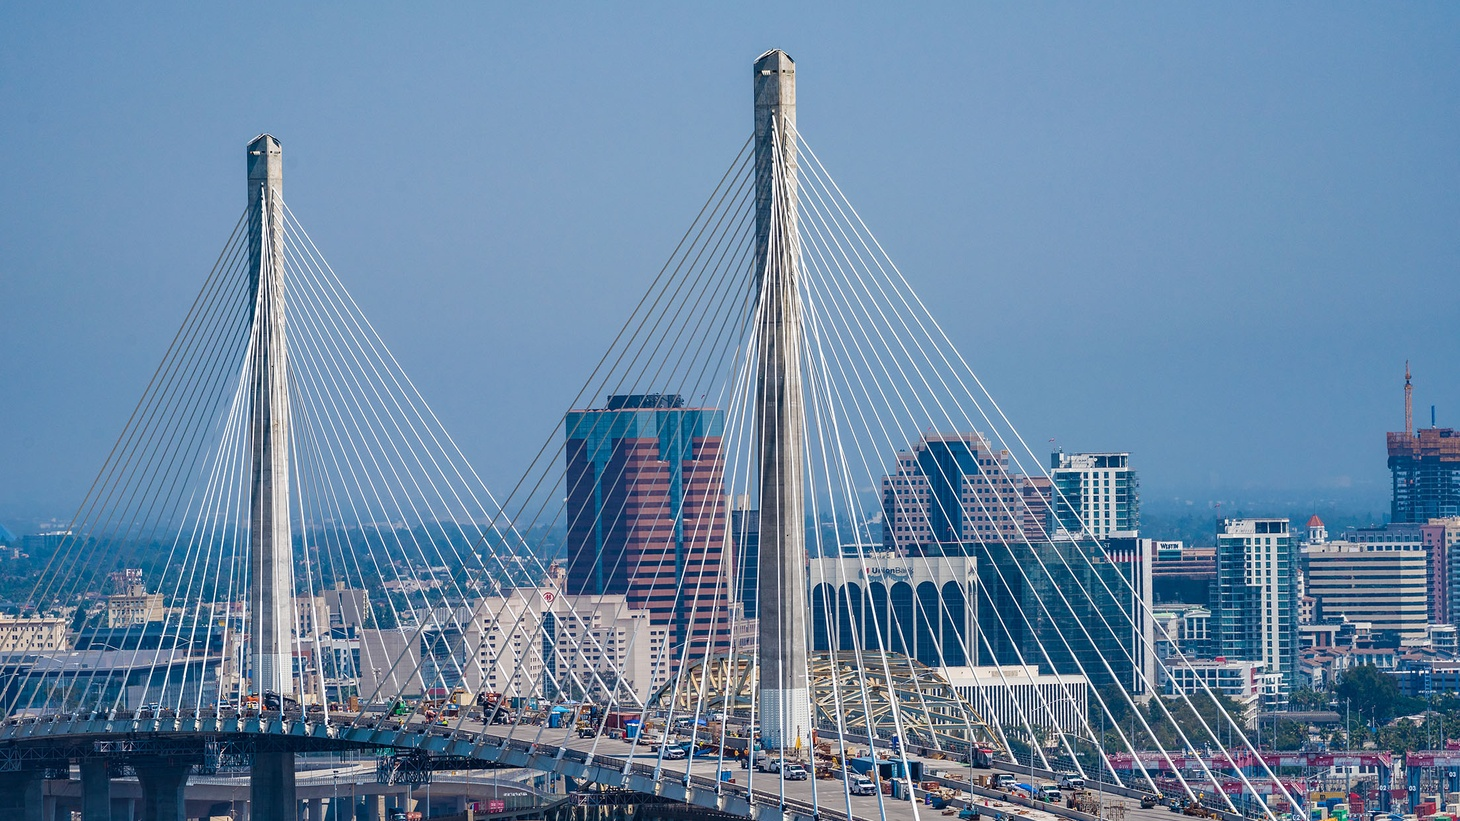 This cable-stayed bridge is held up by 80 white cables attached to two towers, which do the heavy lifting.